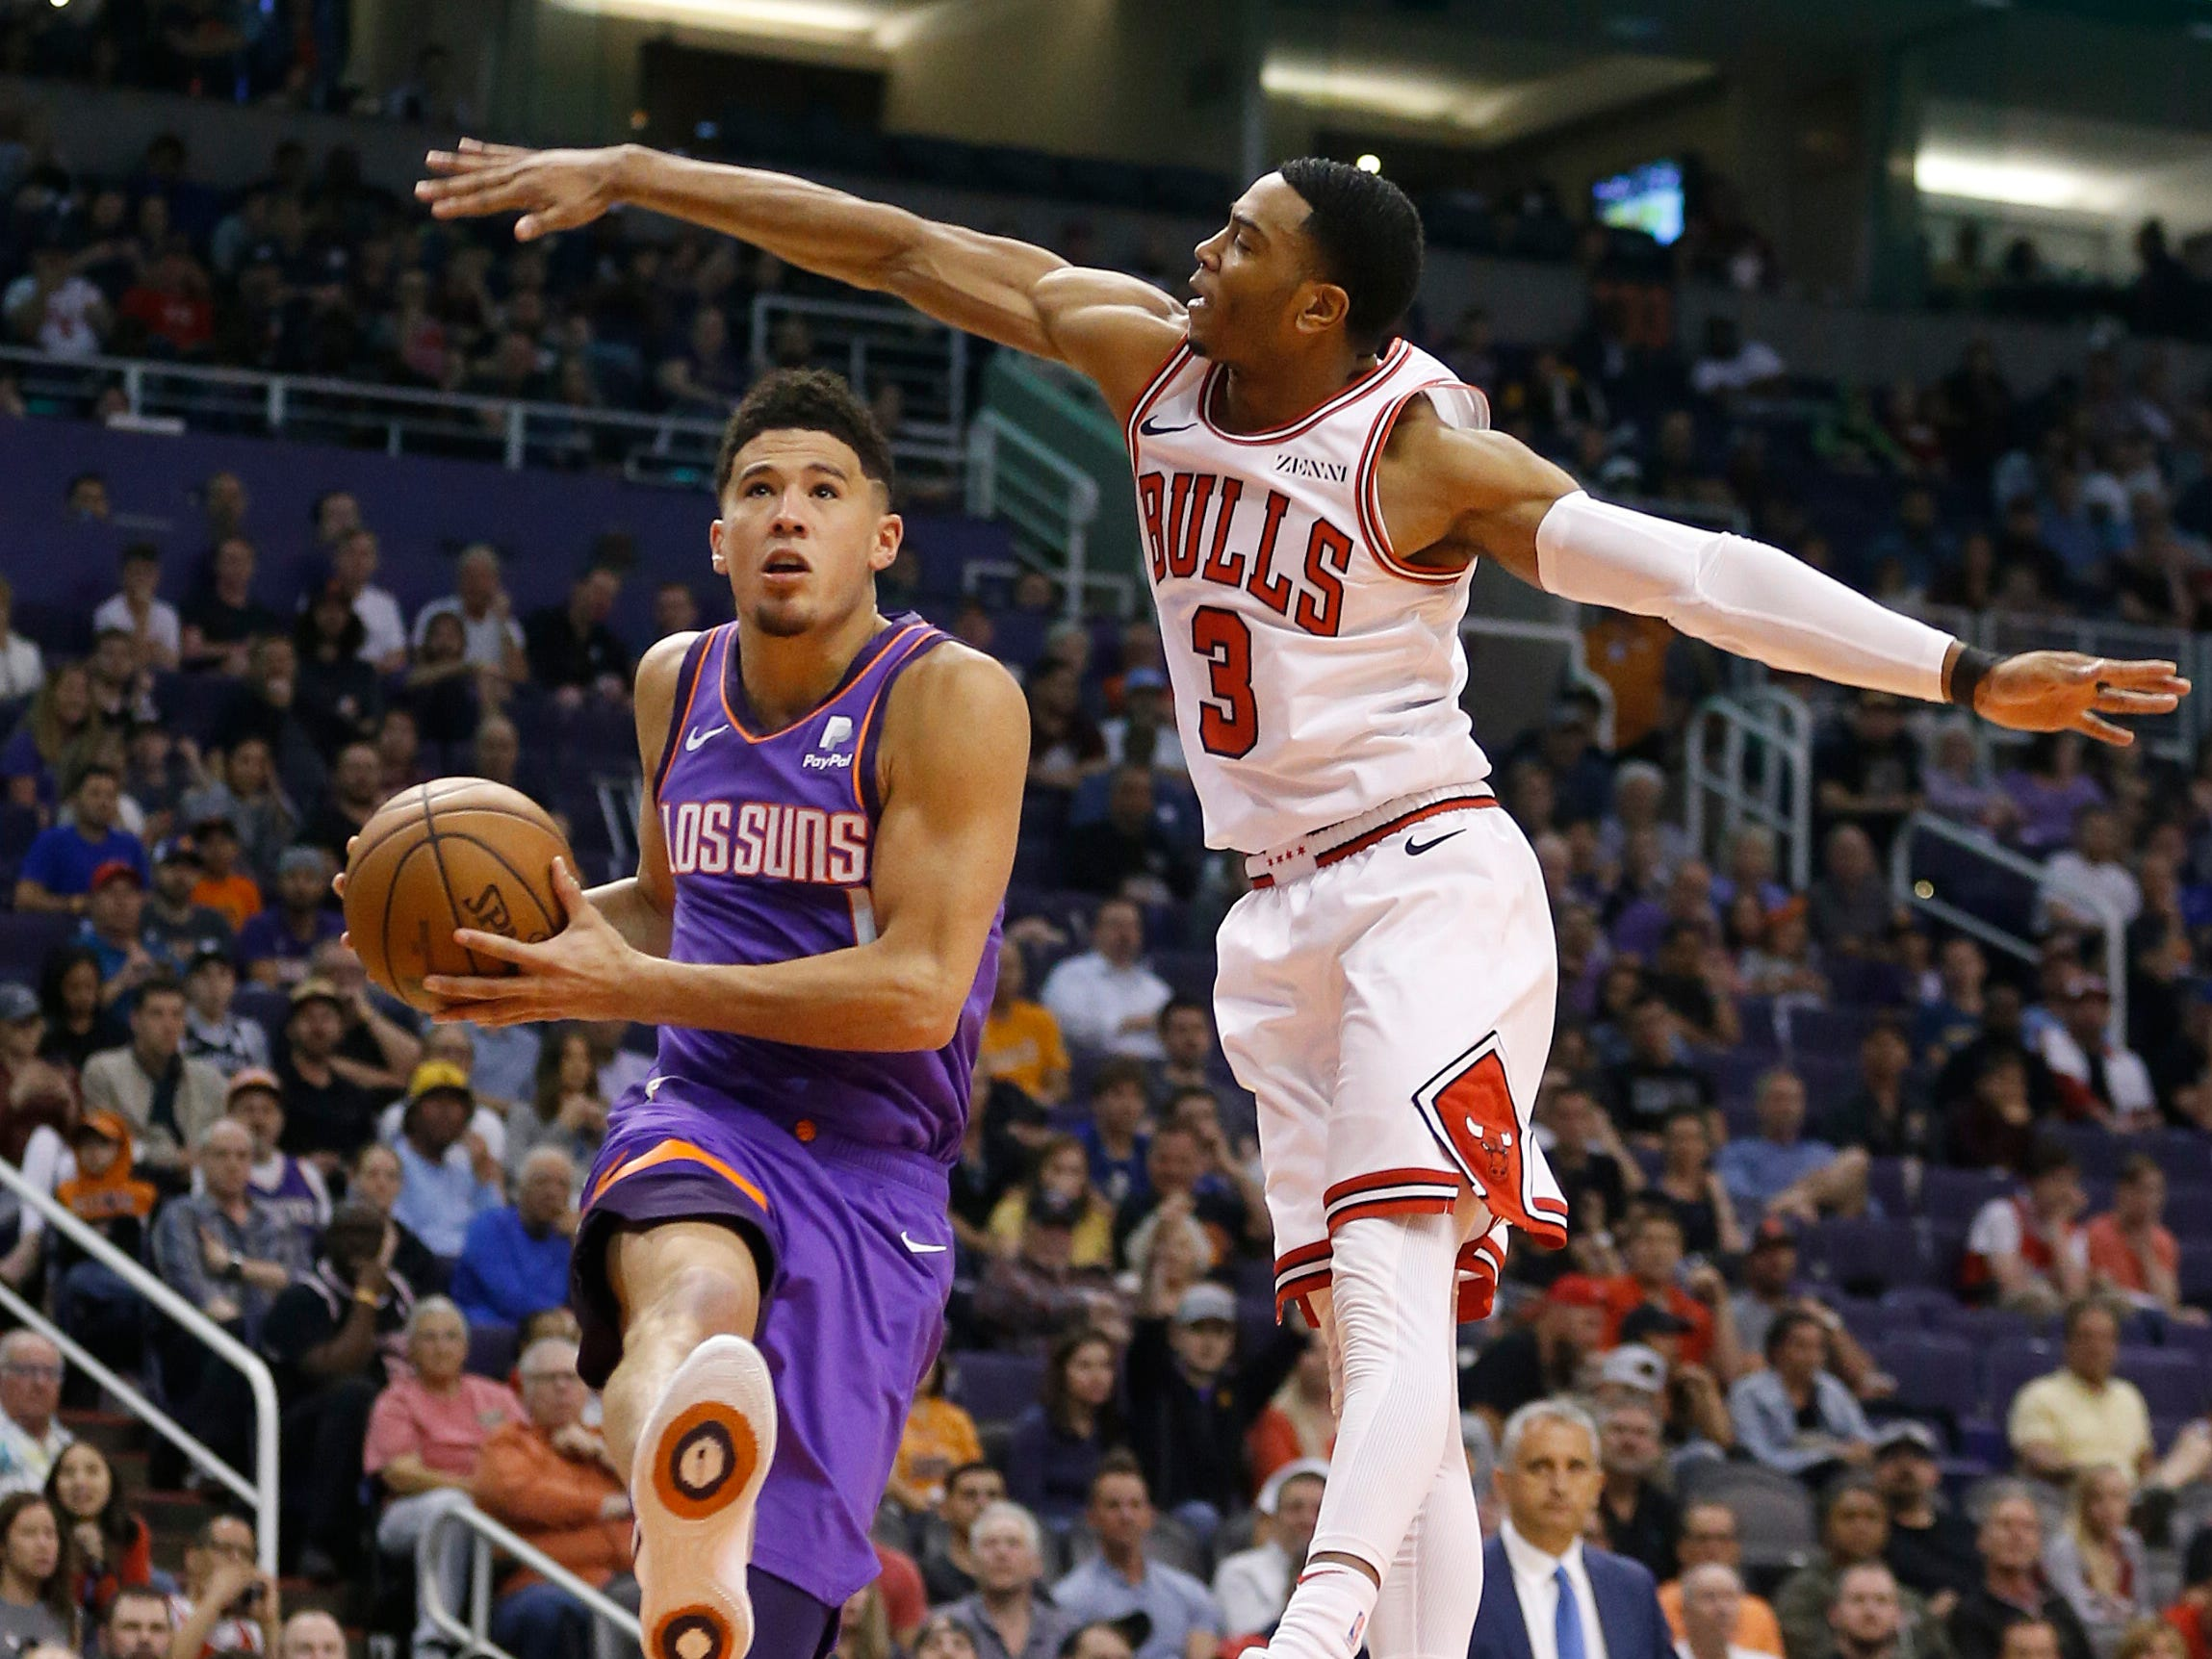 Suns' Devin Booker (1) goes underneath the defense of Bulls' Shaq Harrison (3) during the second half at Talking Stick Resort Arena in Phoenix, Ariz. on March 18, 2019.